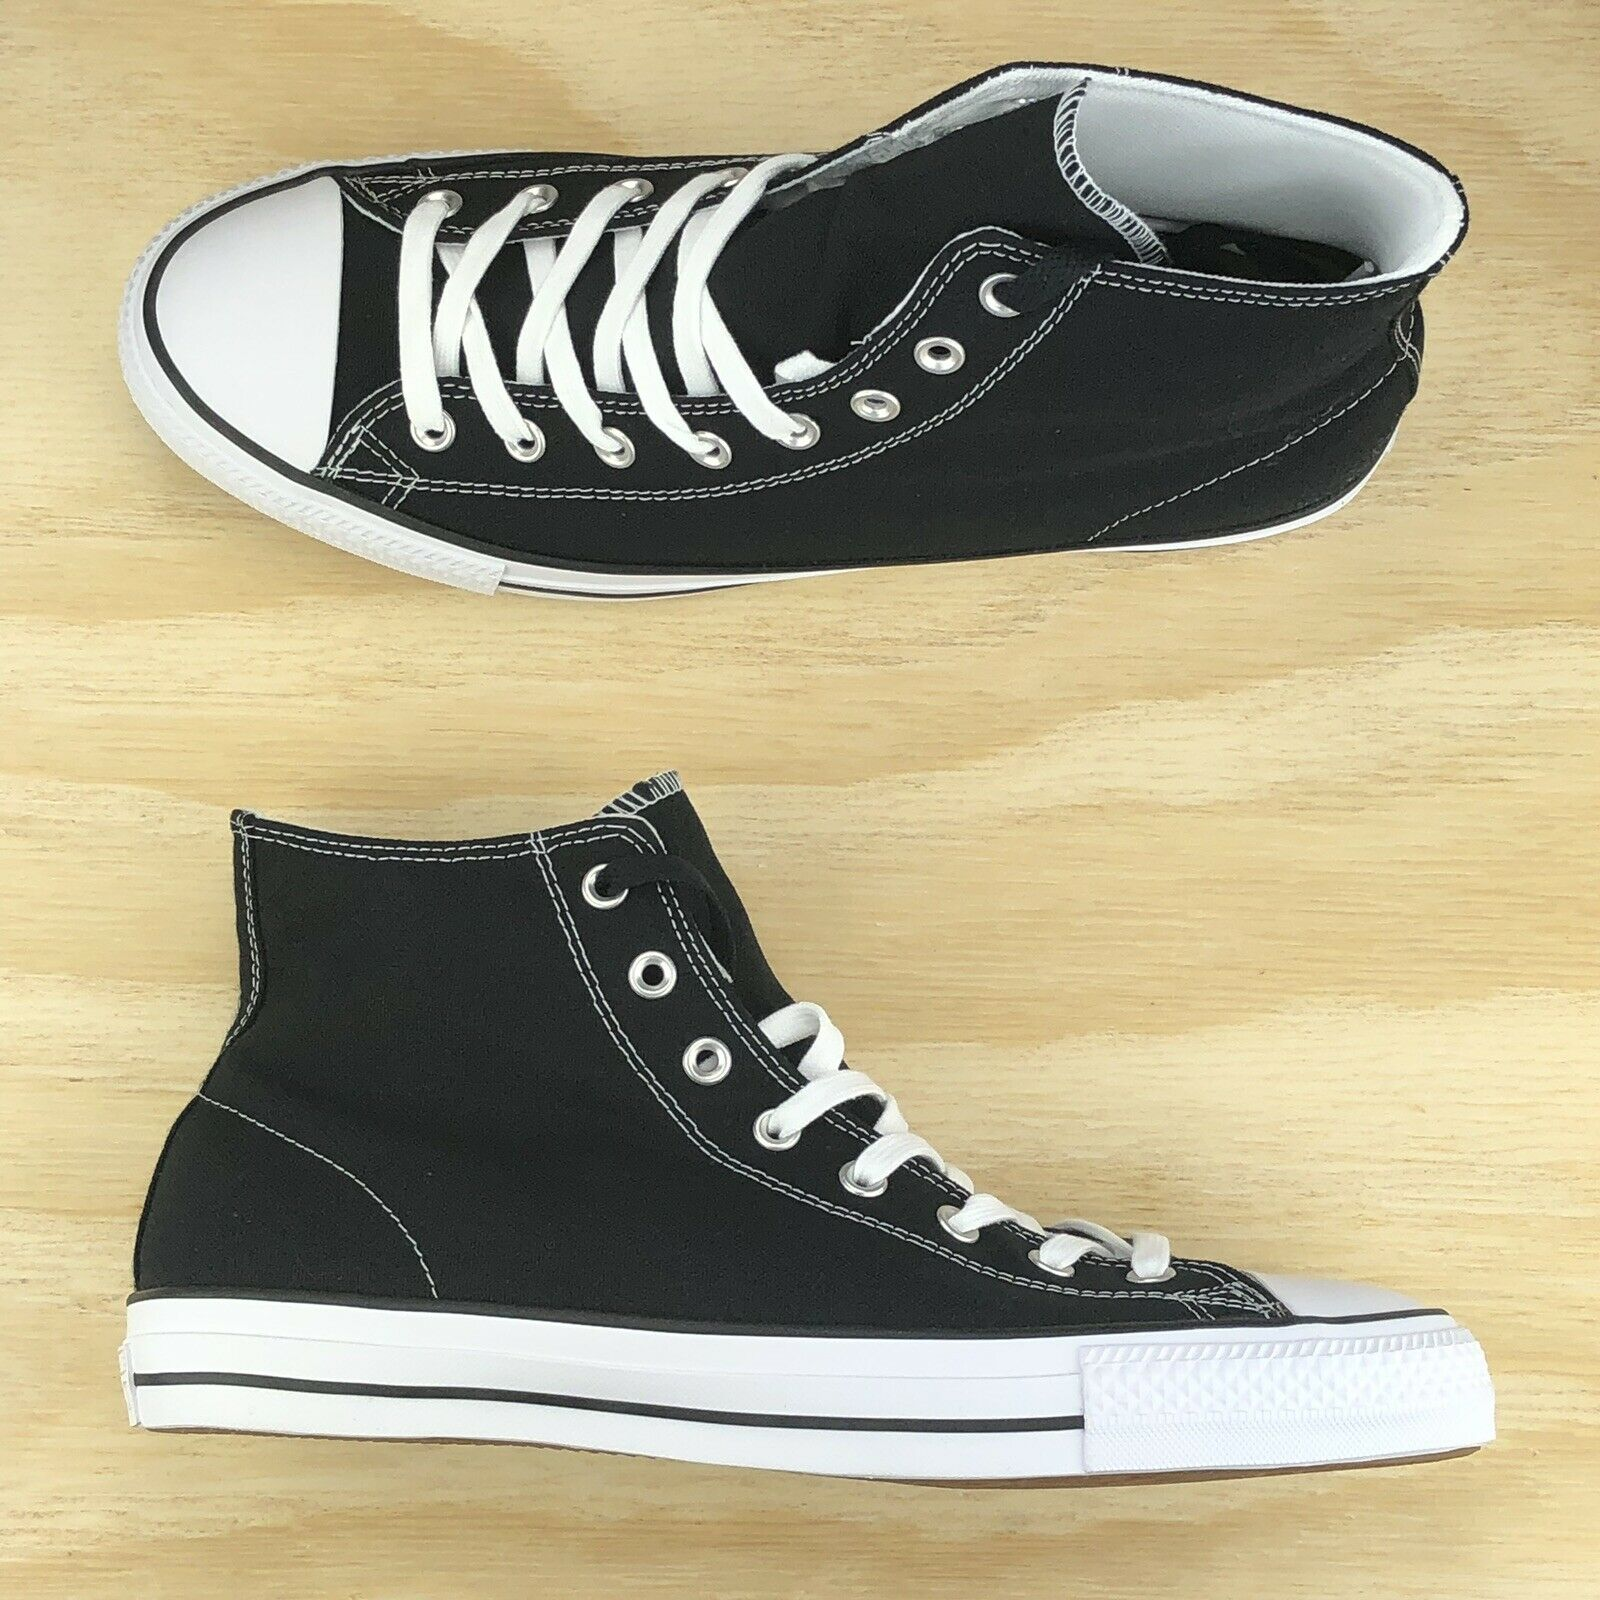 Converse Chuck Taylor All Star Pro Ox Hi Top Black White shoes 155751C Size 10.5